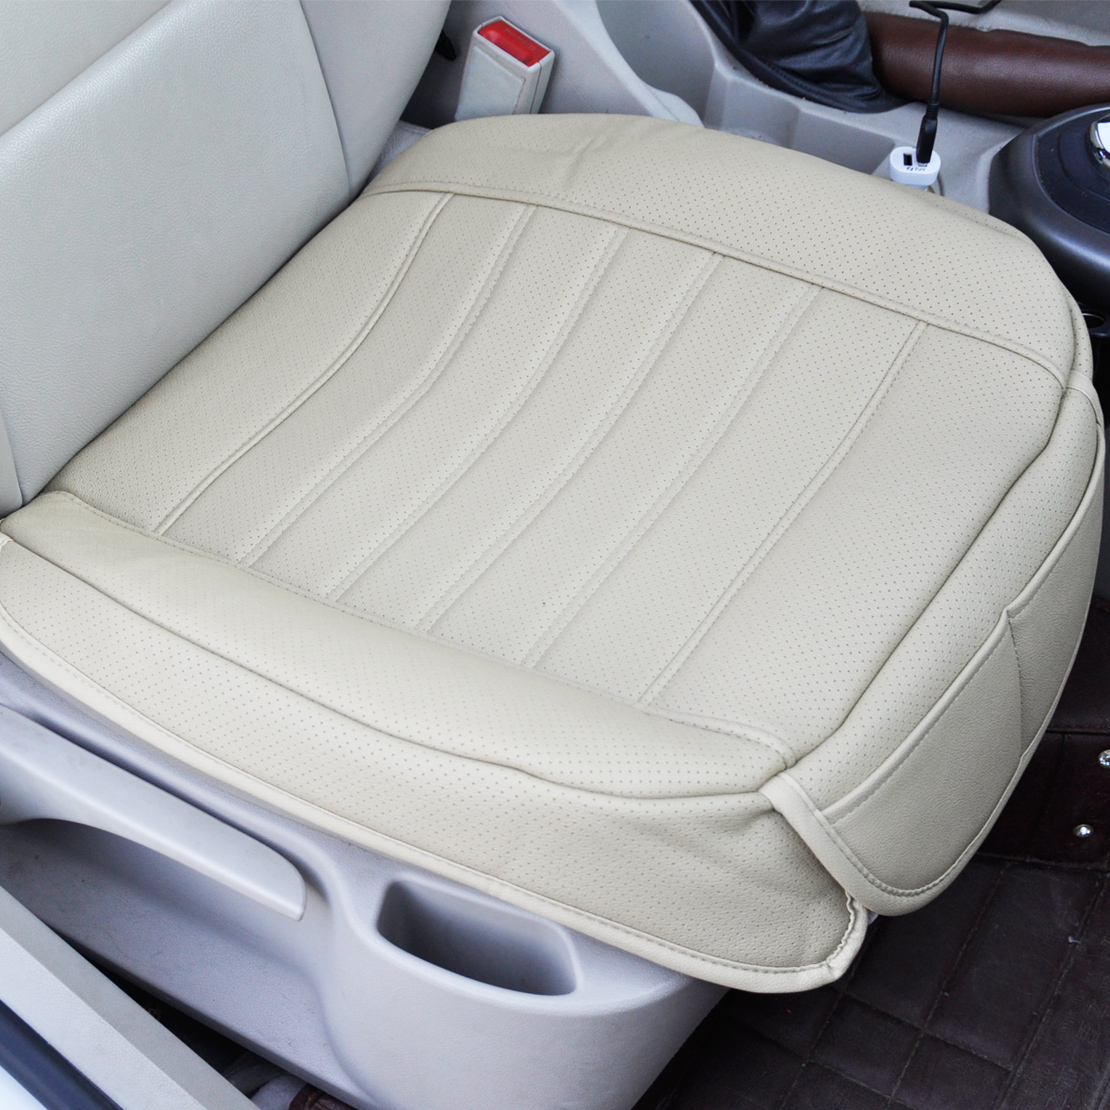 Universal PU Leather Car Interior Front Seat Cover Pad Fit VW Audi BMW Benz 702706039161